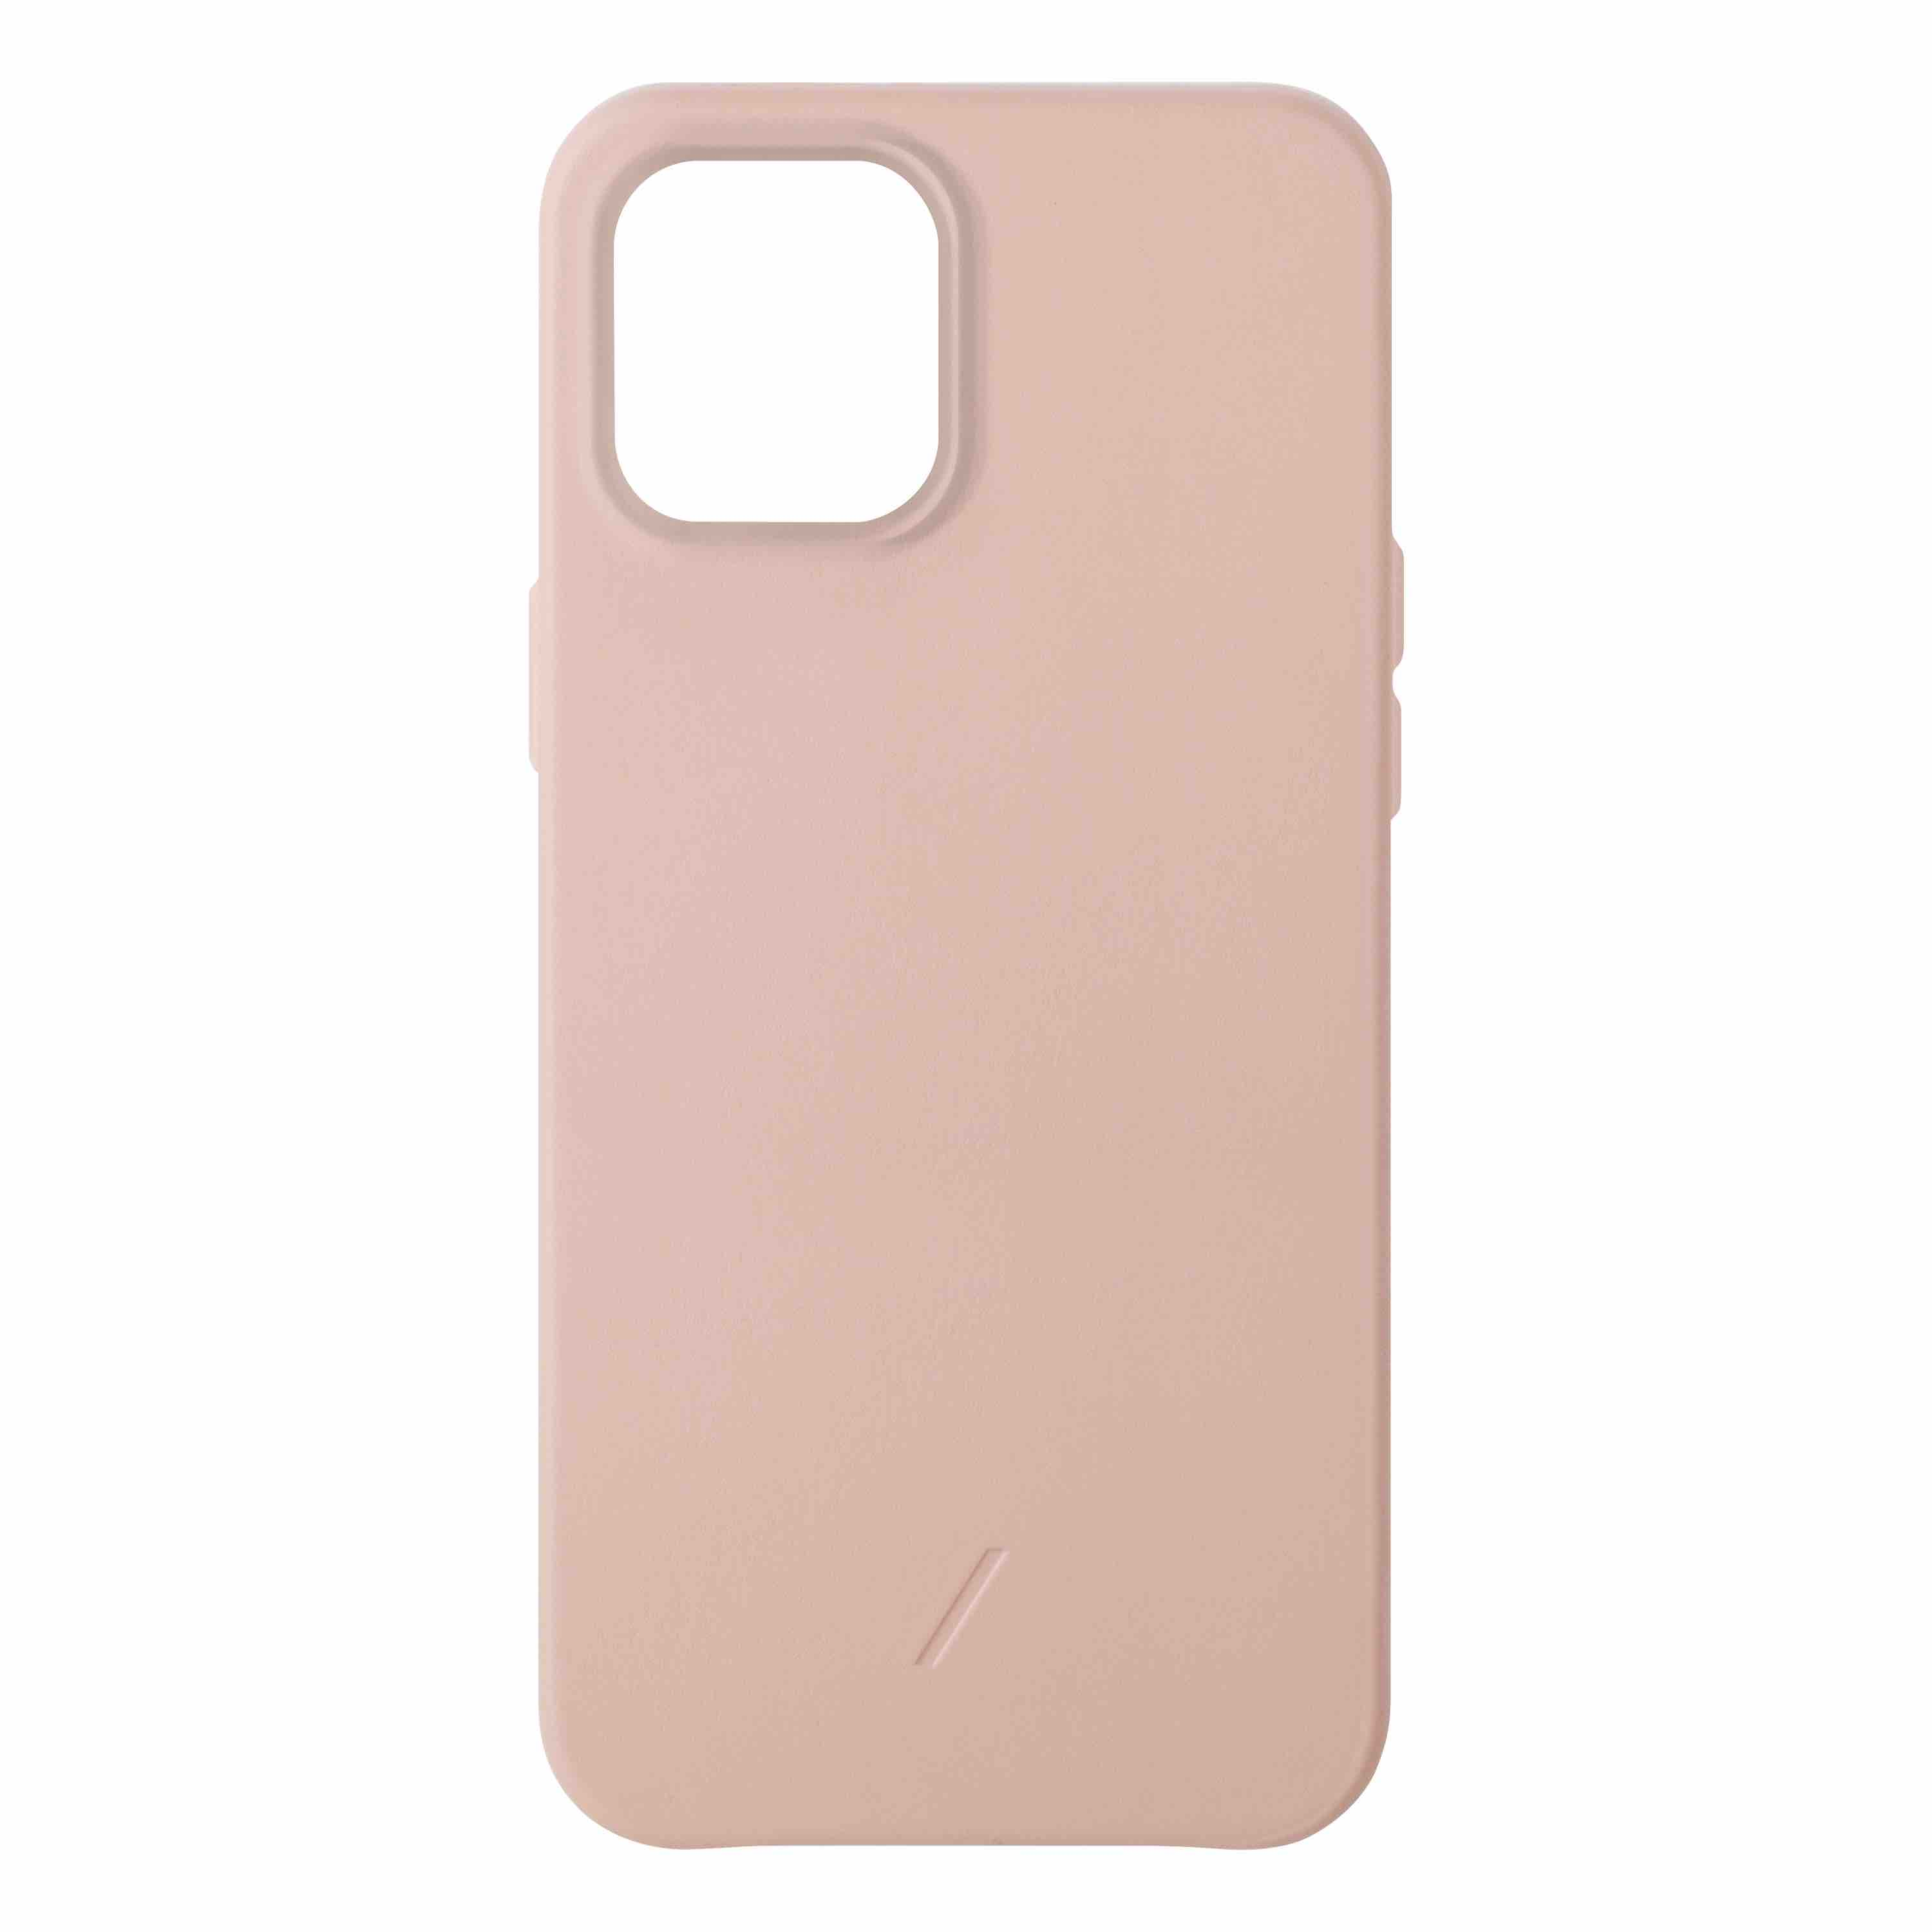 Native Union iPhone 12 Pro Max Clic Classic Case